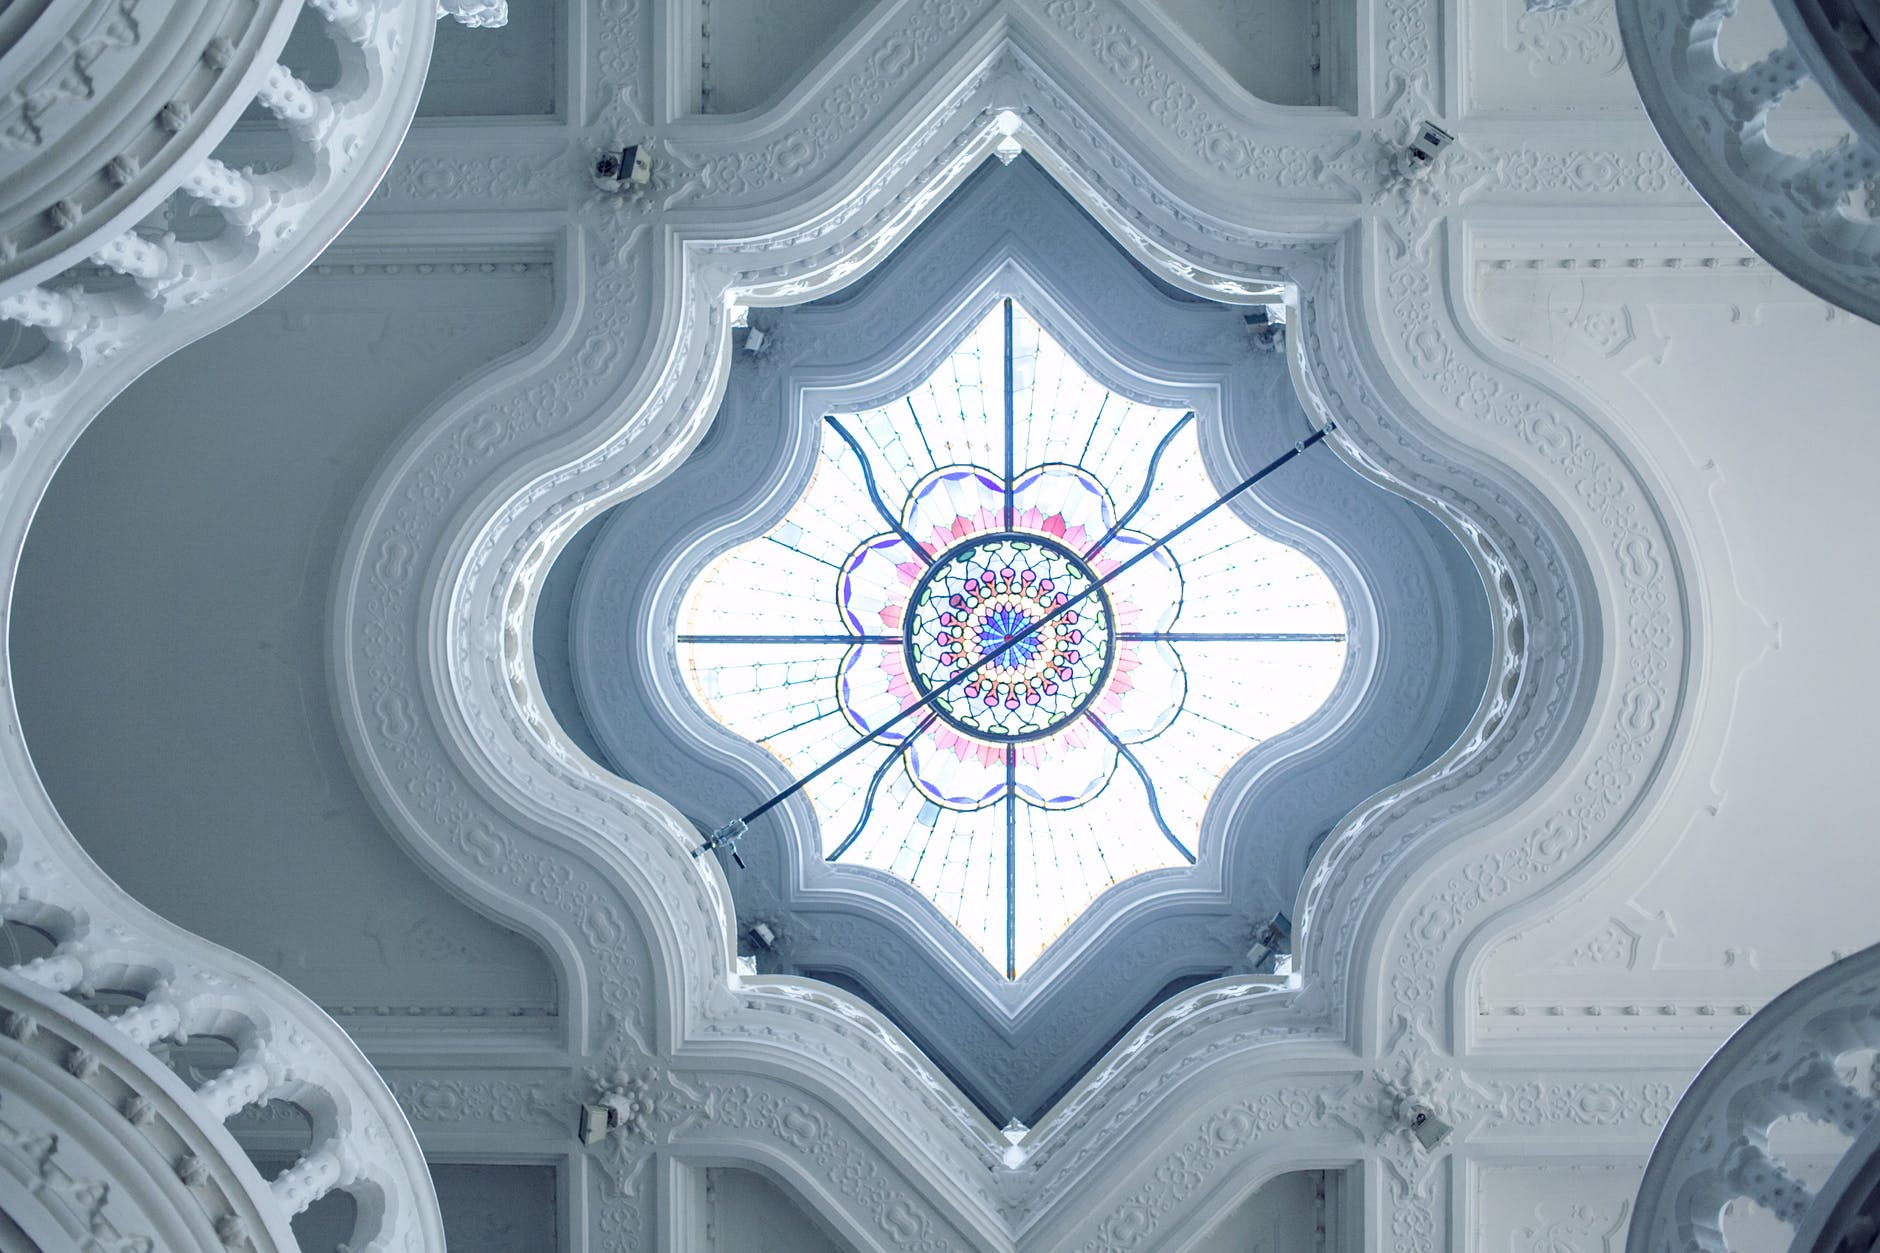 ornamental ceiling with colorful stained glass